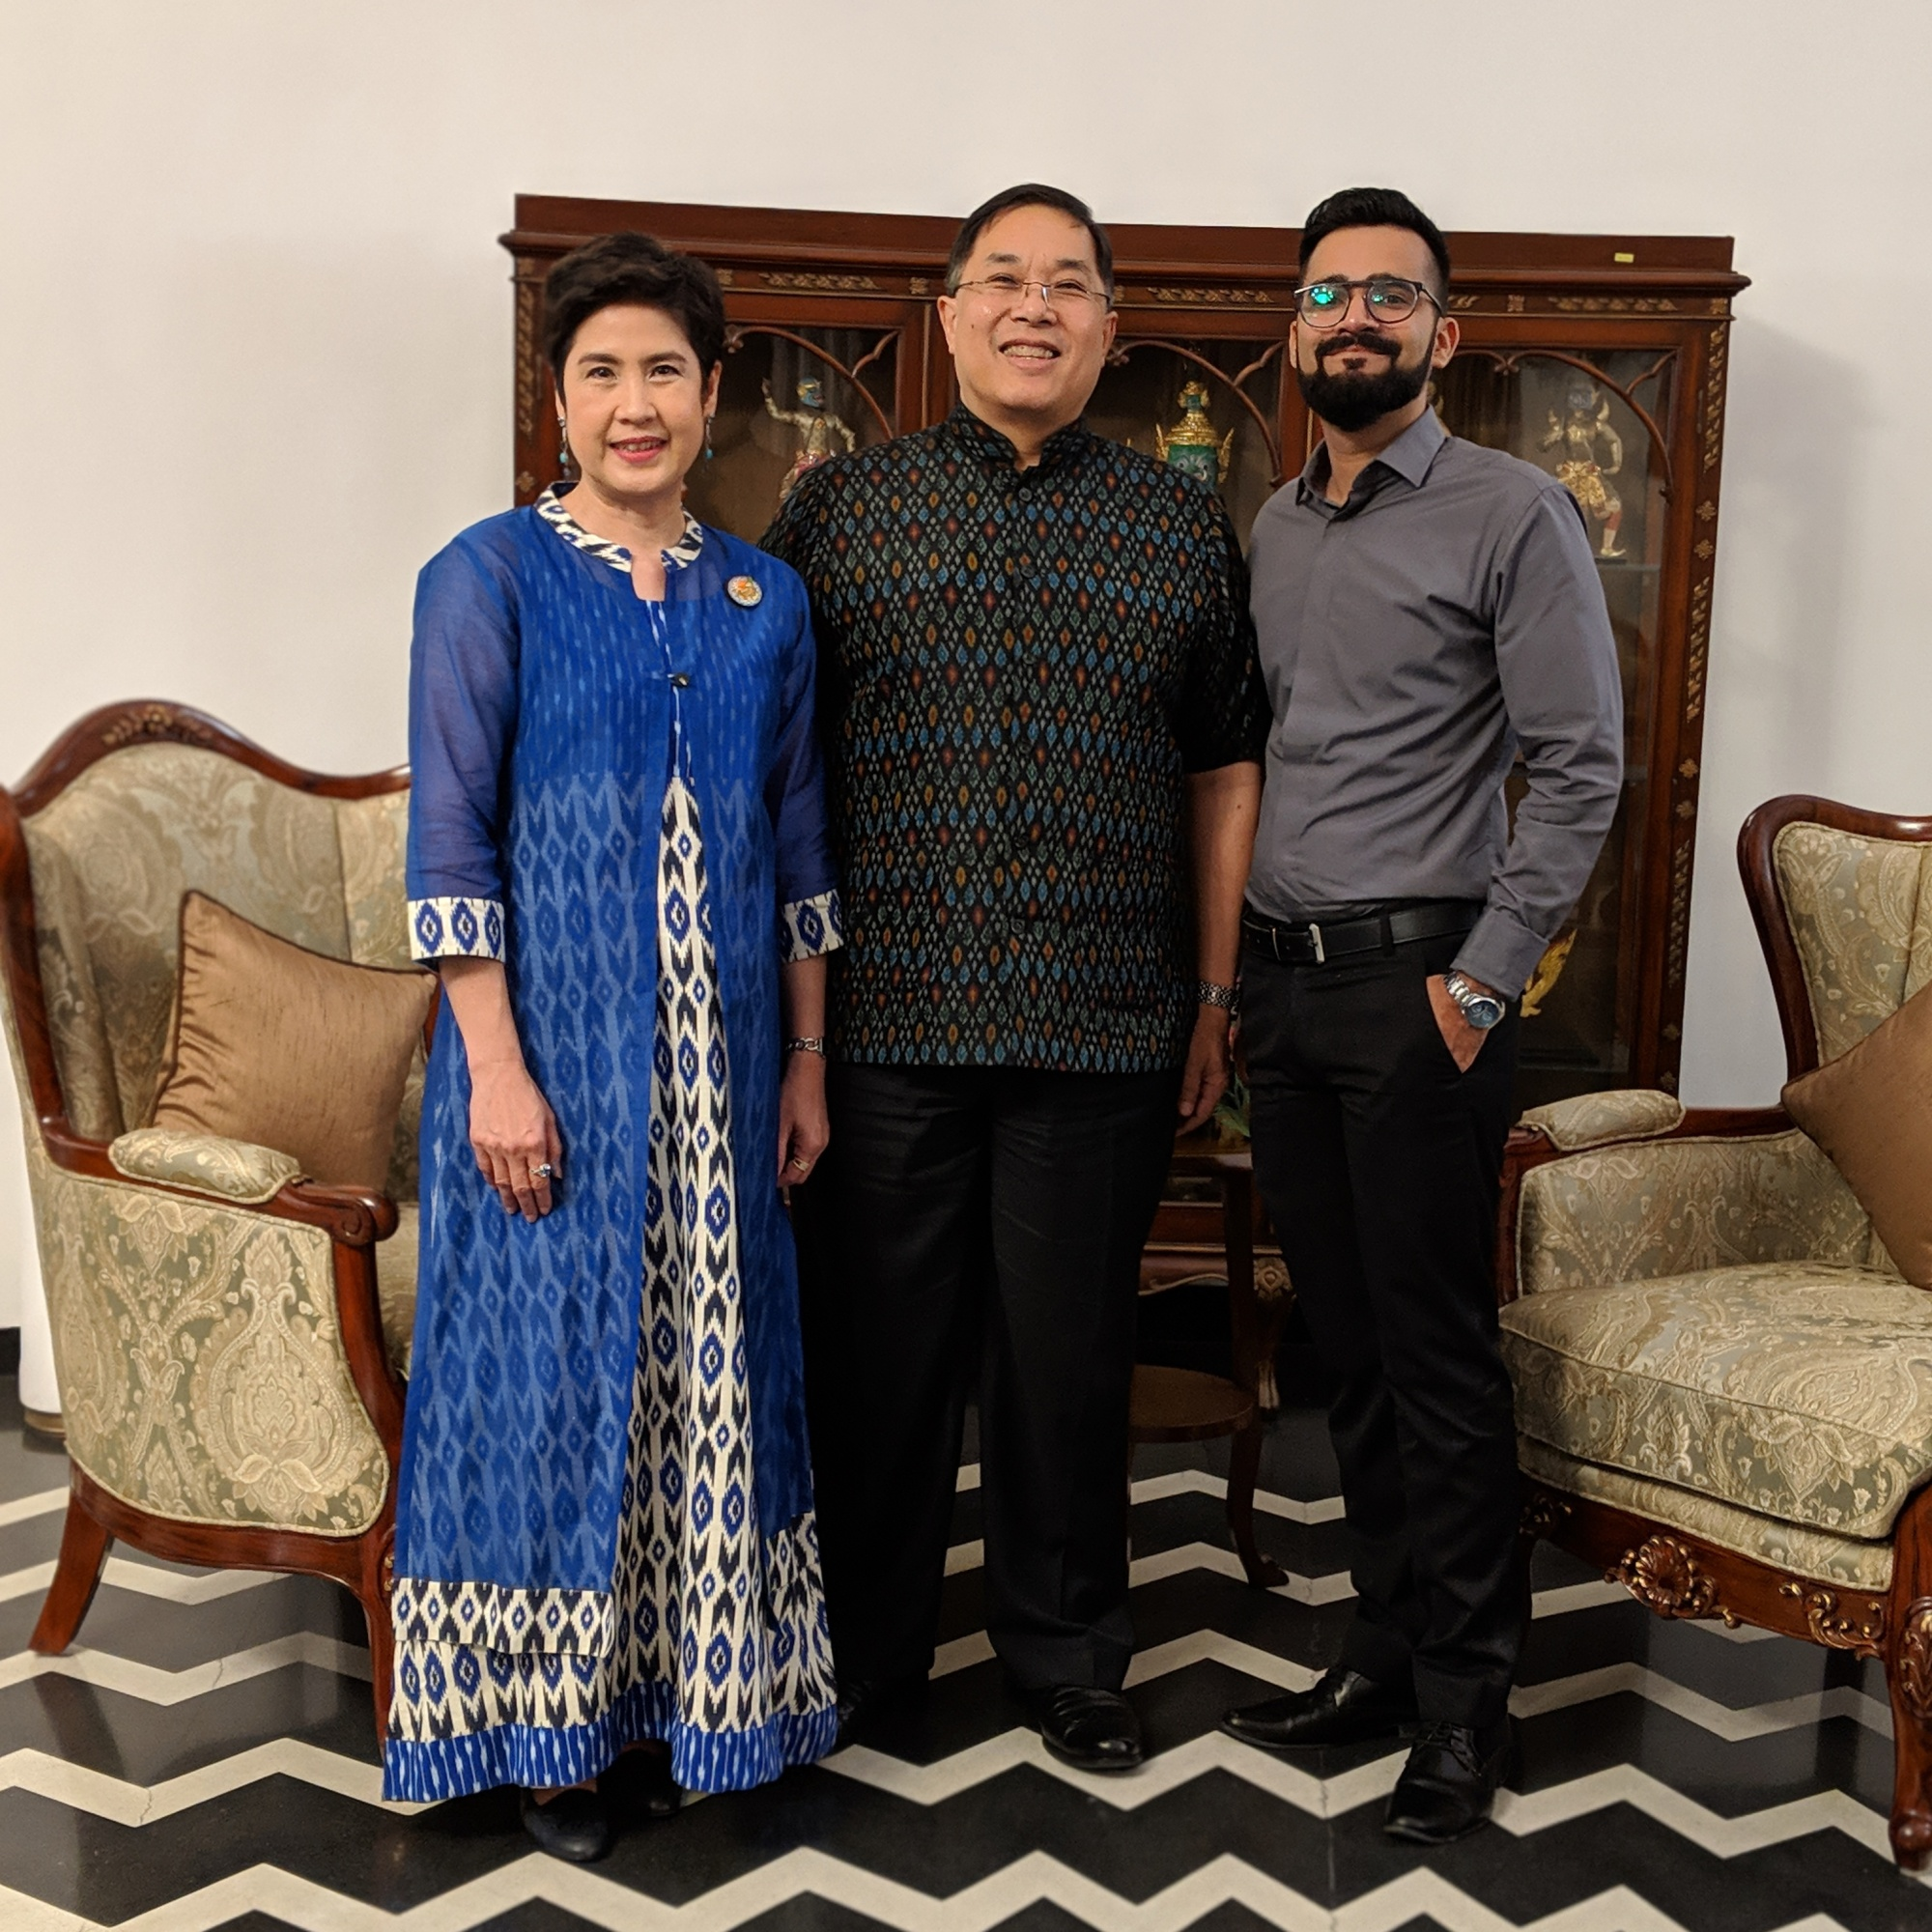 The Food Fanatic with the Ambassador of Thailand and his better half